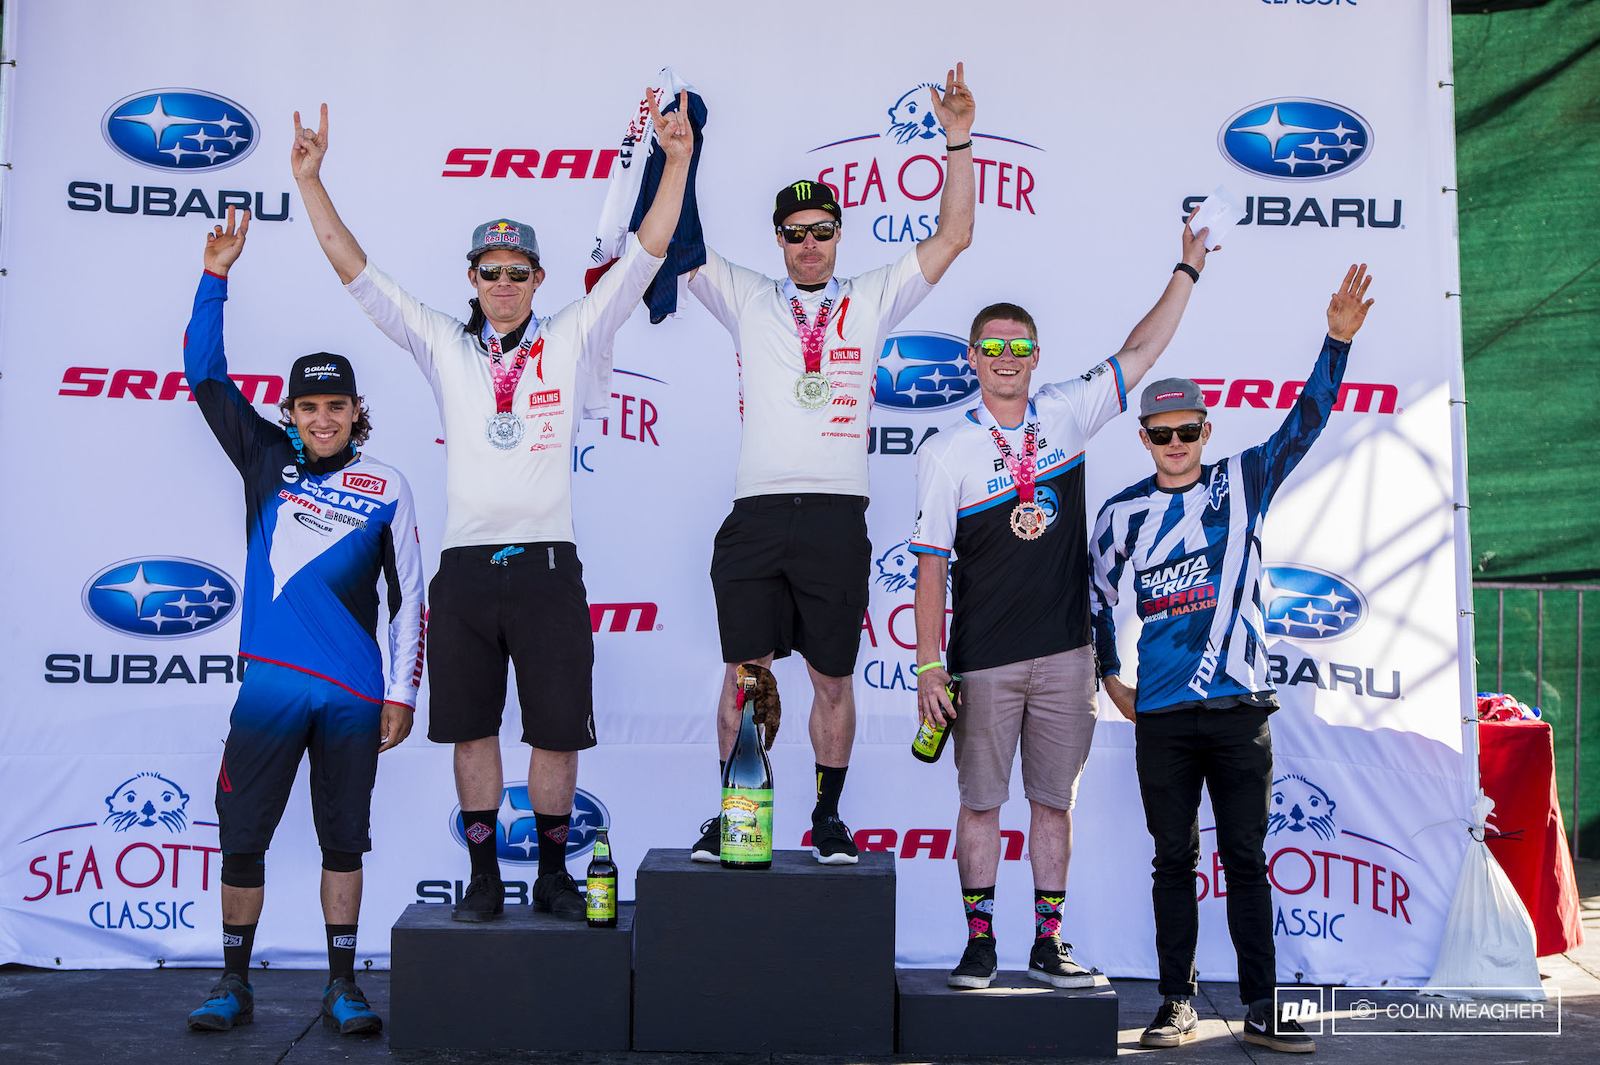 Pro Men s Podium L-R MacKay Veniza 4 Curtis Keene 2 Jared Graves 1 James Eves 3 Mark Scott 5 .